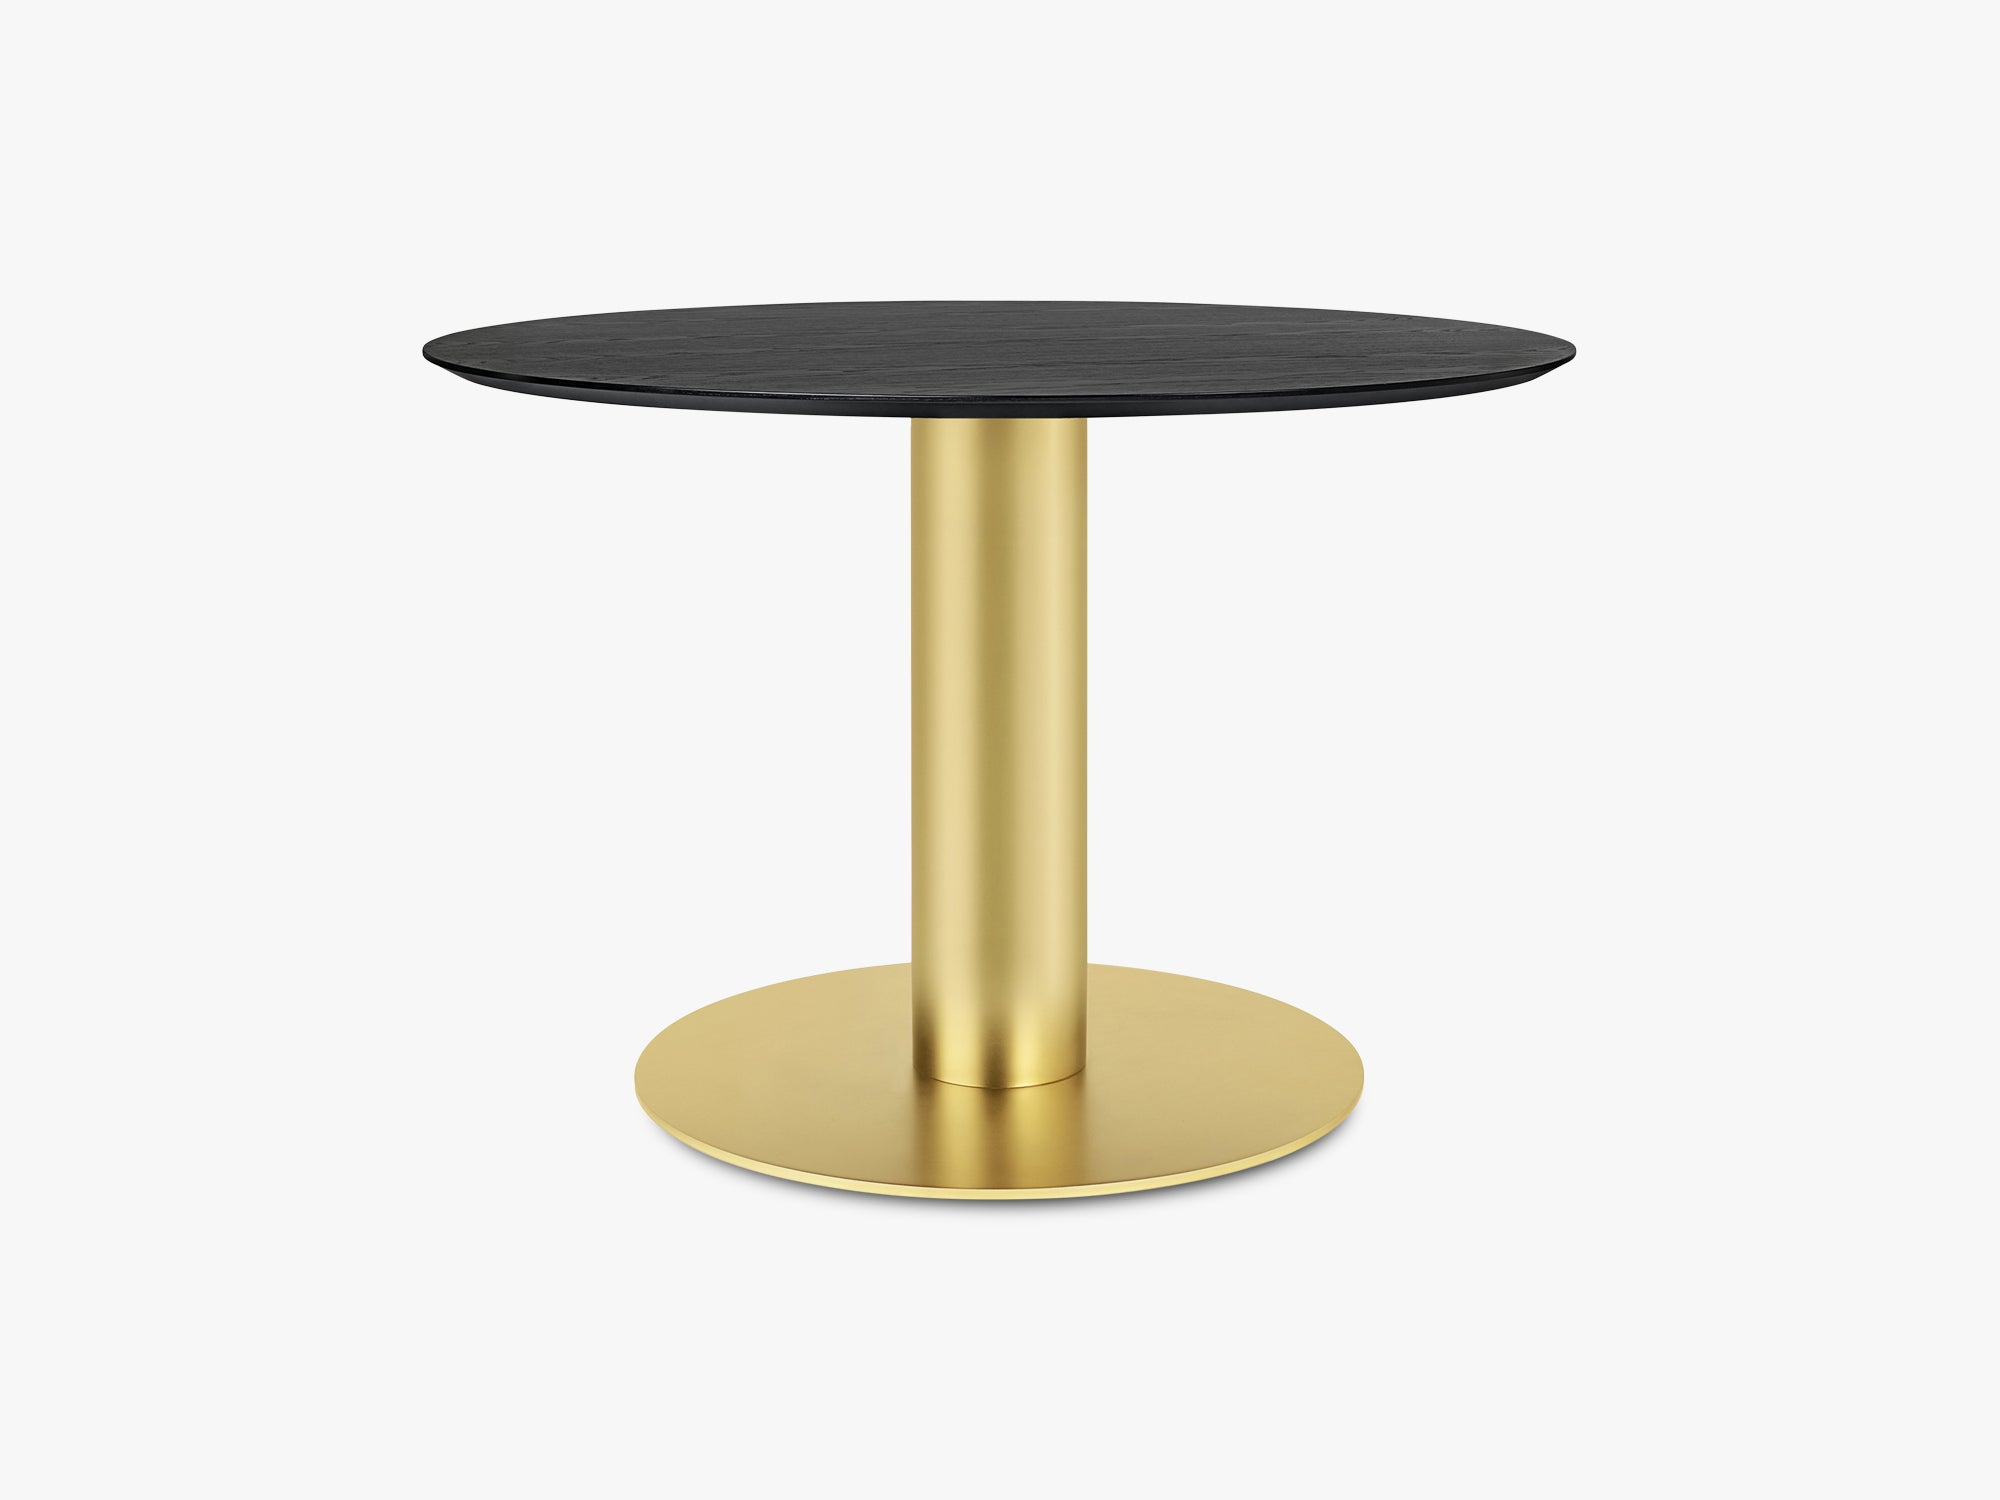 GUBI 2.0 Dining Table - Round - Ø110 - Brass base, Black Stained Ash top fra GUBI